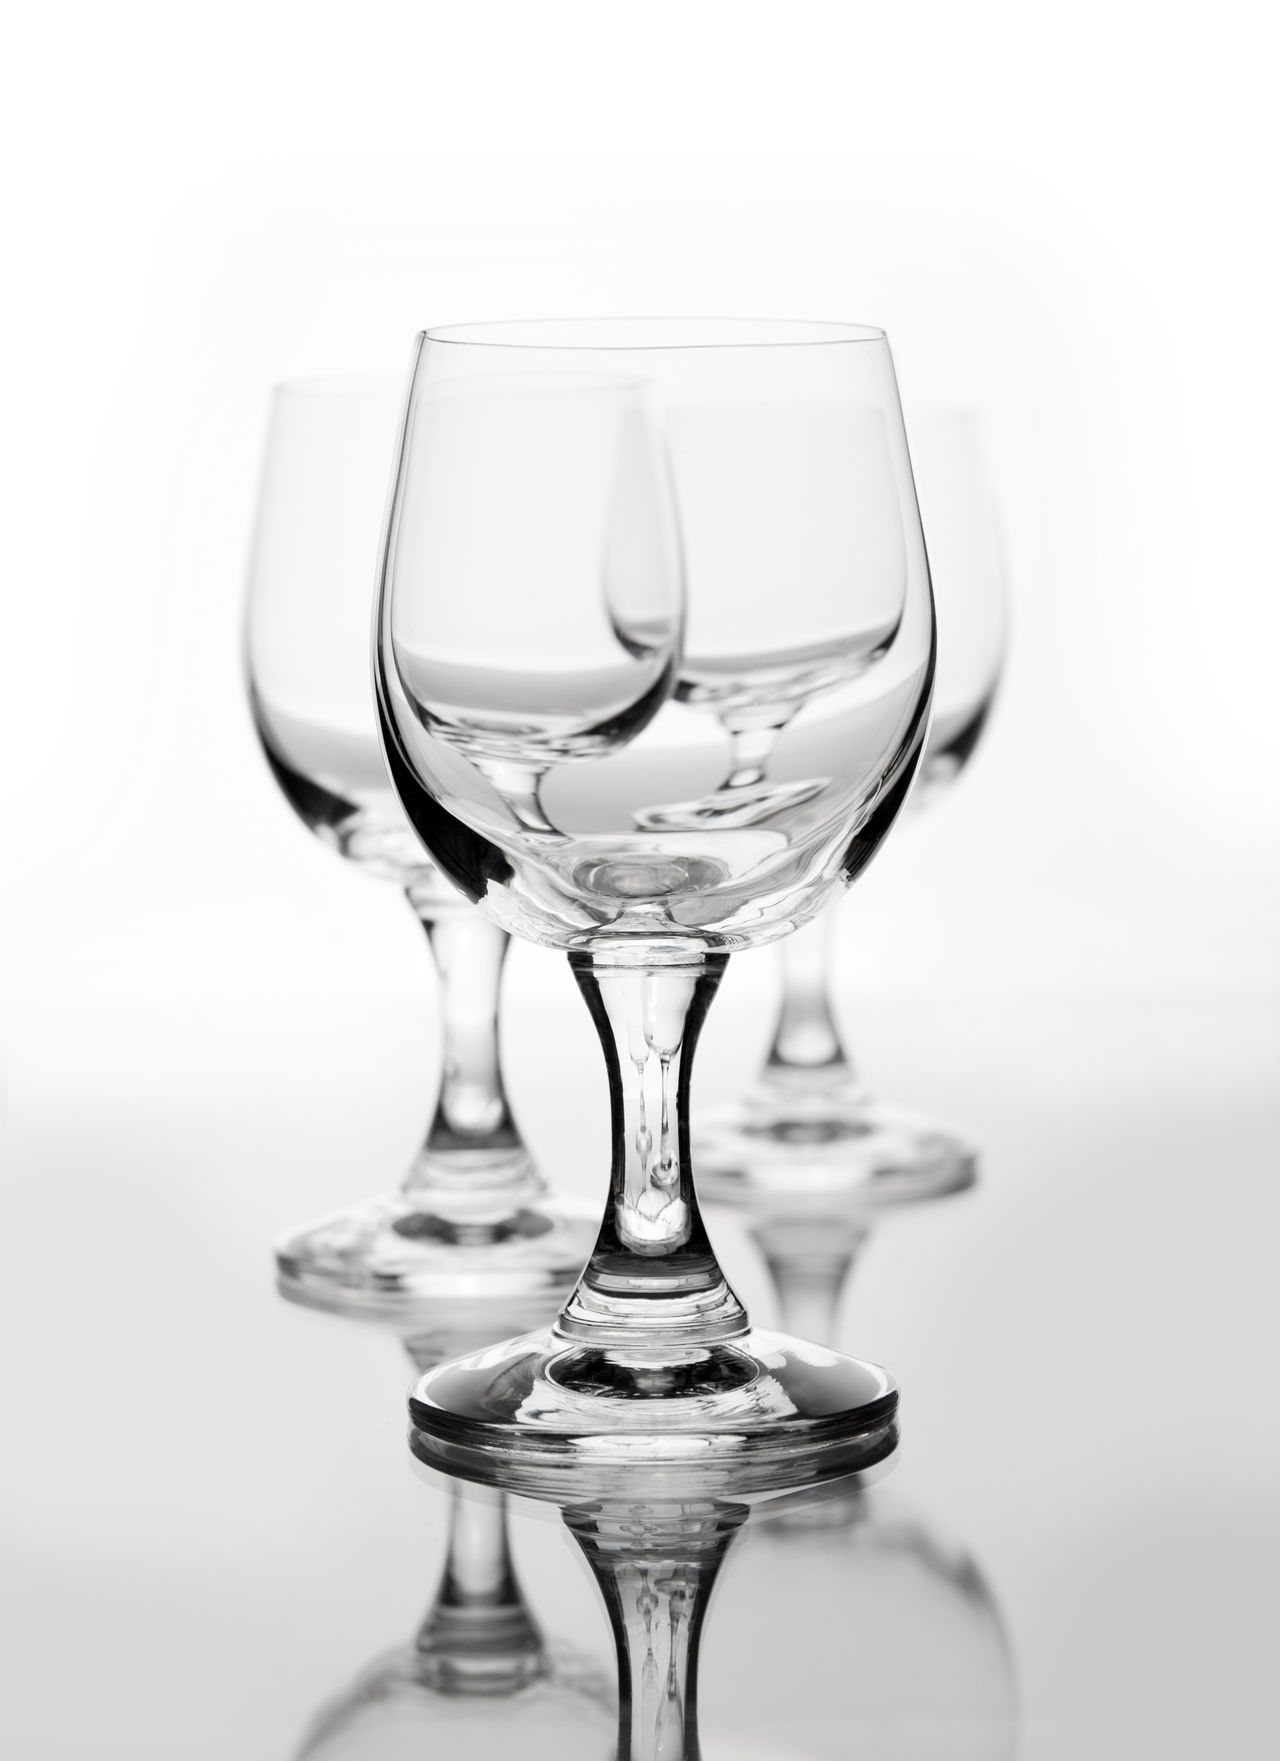 Three empty wine glasses on white, one by one blurred behind, objects standing on glass on white background, vertical orientation, nobody. Alcohol Contour Empty Food And Drink Glass No People Stem Stemmed Stemware Studio Shot White Background Wineglass Wineglasses